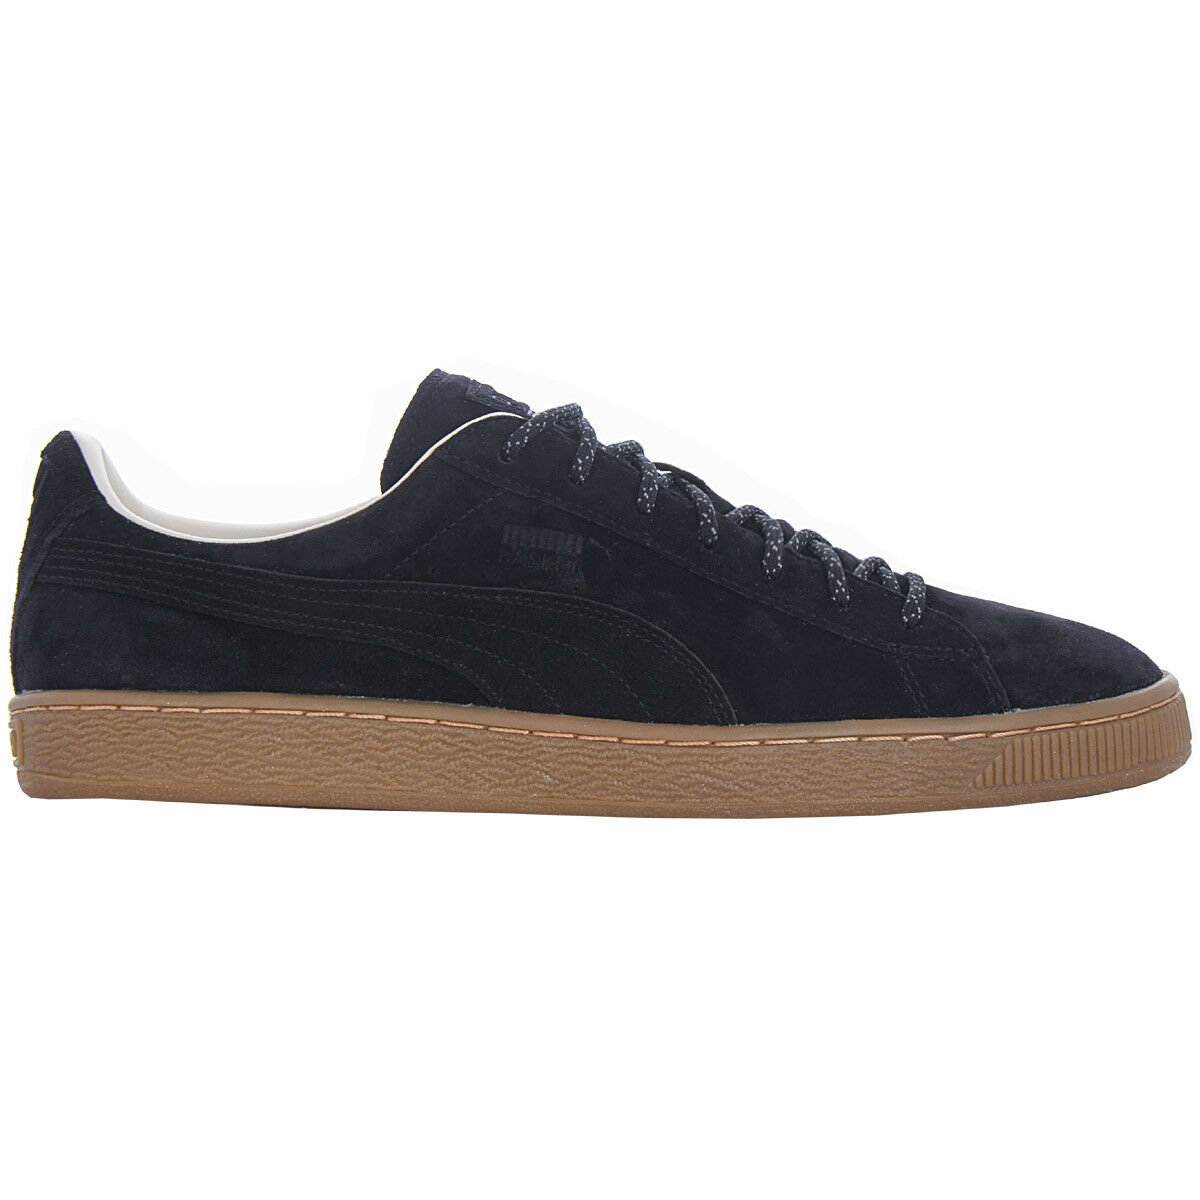 PUMA BASKET CLASSIC WINTERIZED Shoes Black Men's Leather Sneakers New 361324-02 Seasonal clearance sale